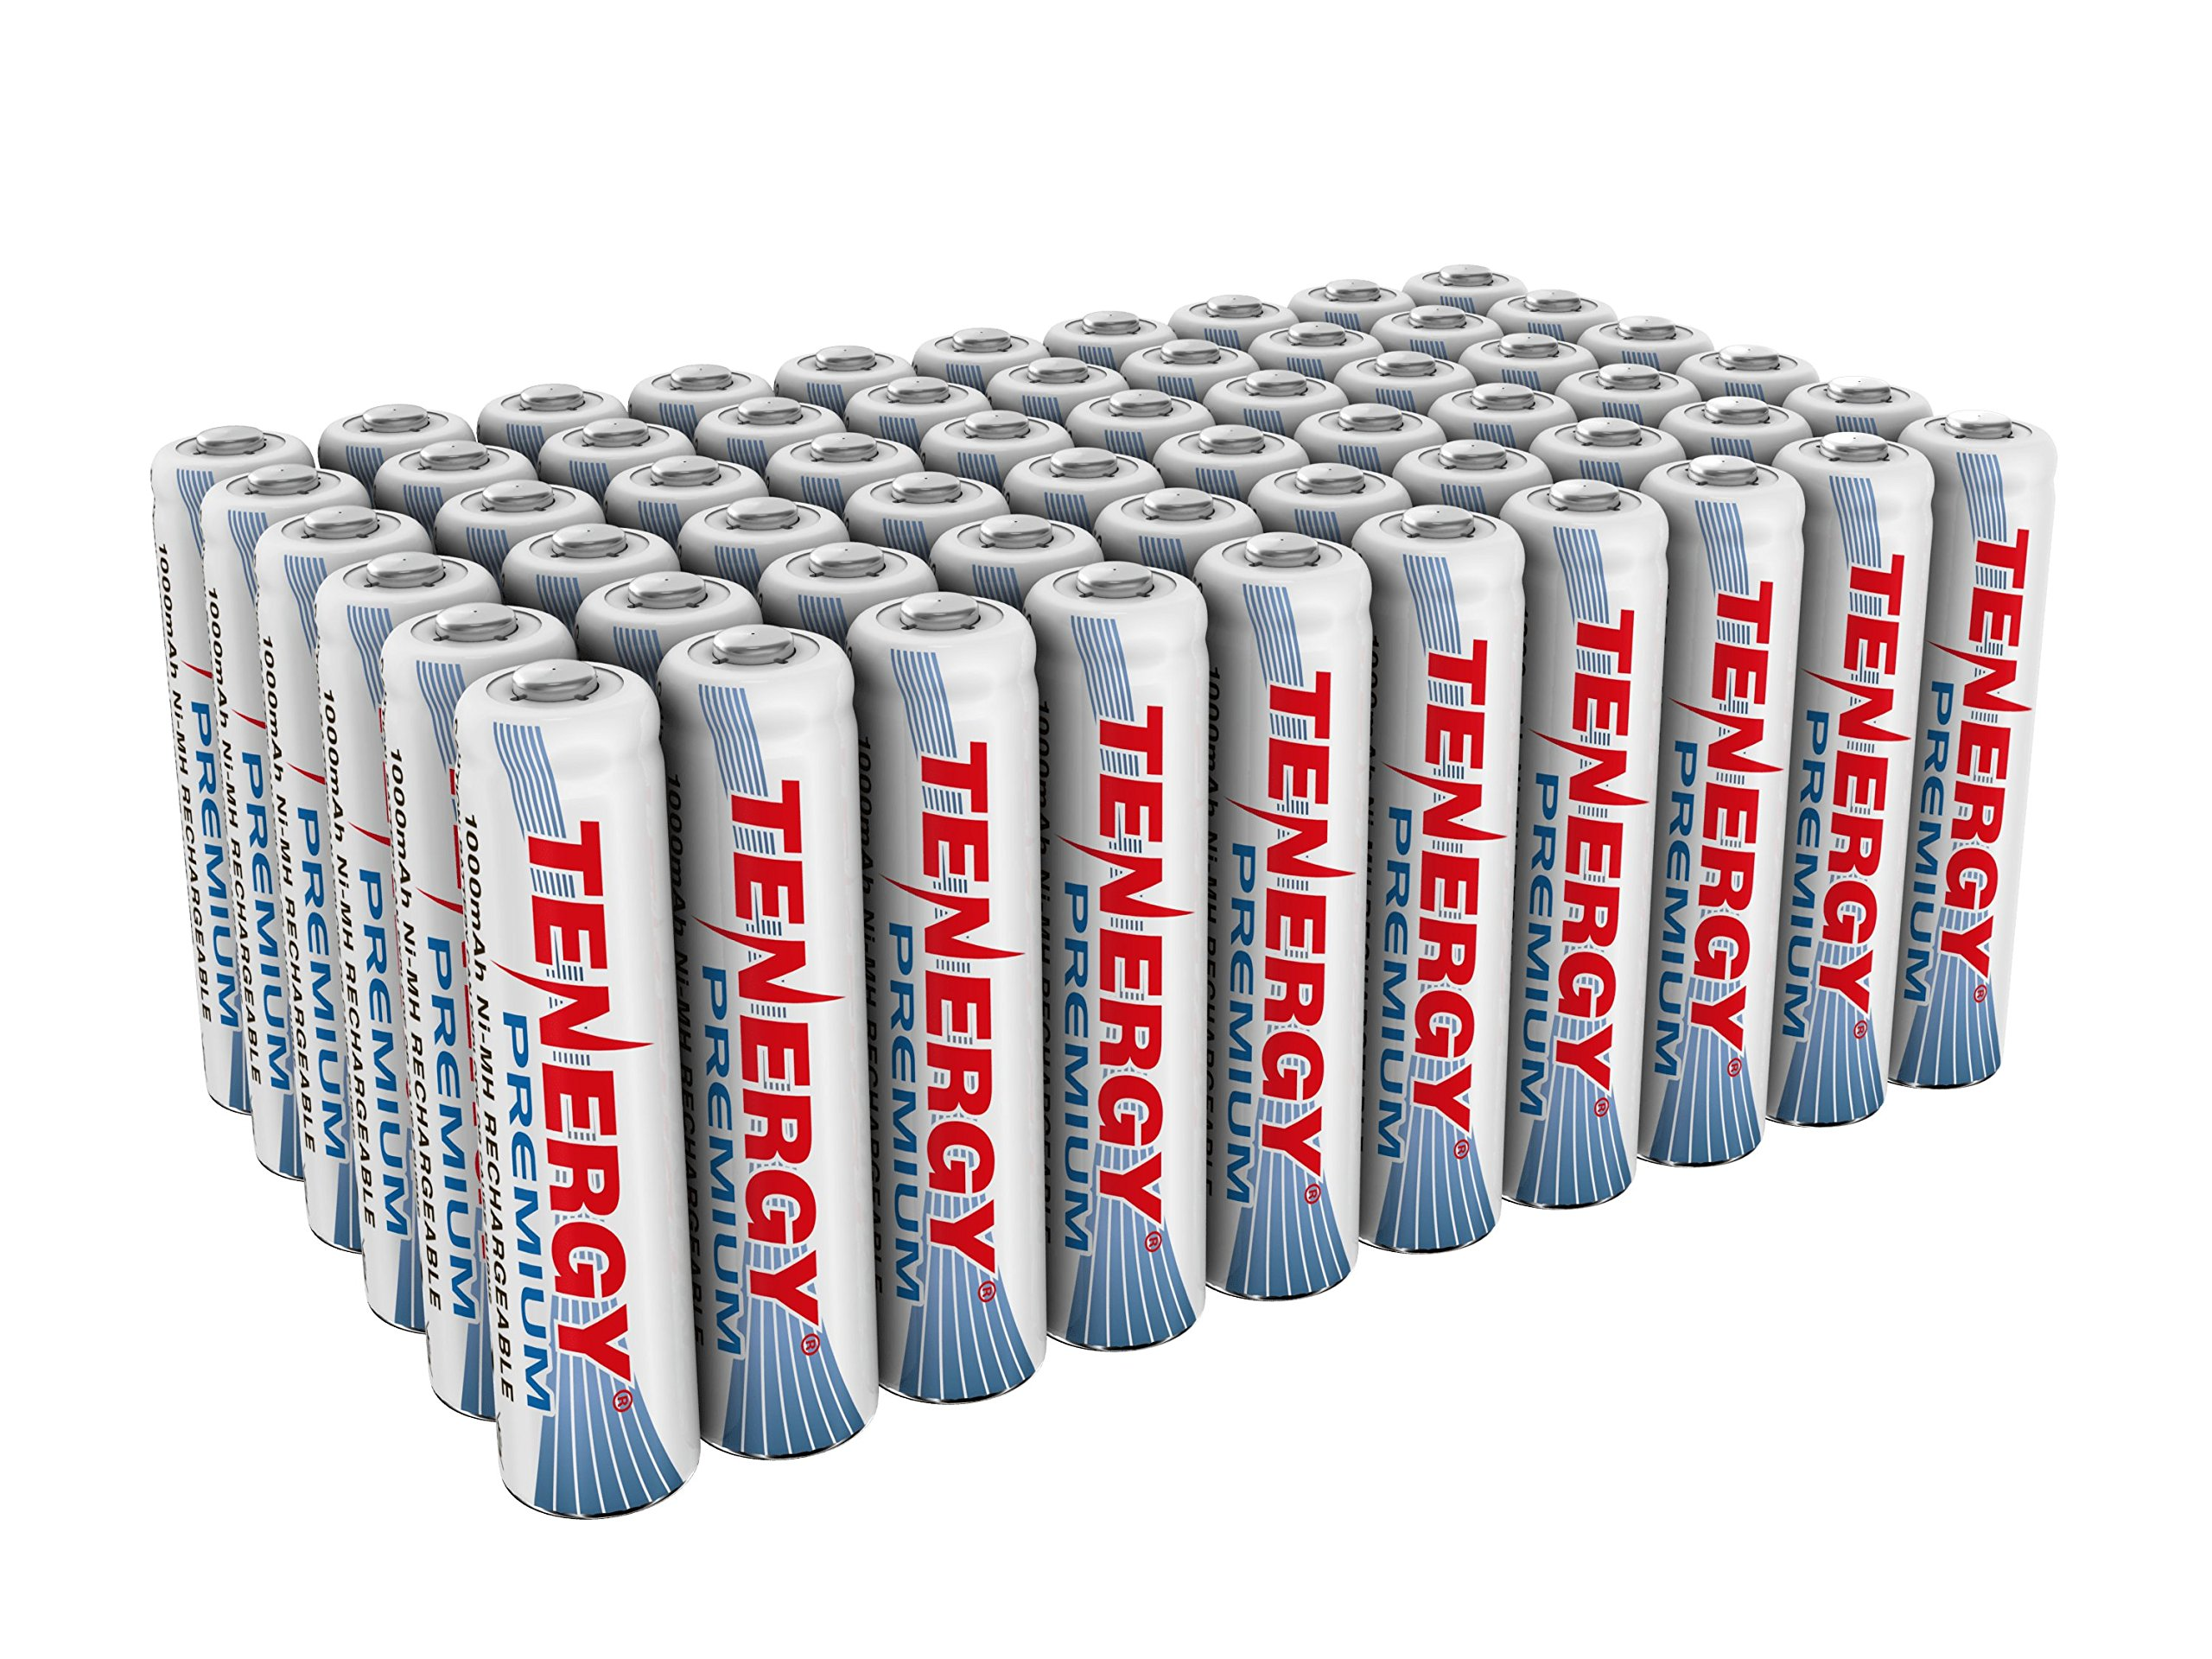 Tenergy Premium Rechargeable AAA Batteries, High Capacity 1000mAh NiMH AAA Batteries, AAA Cell Battery, 60-Pack by Tenergy